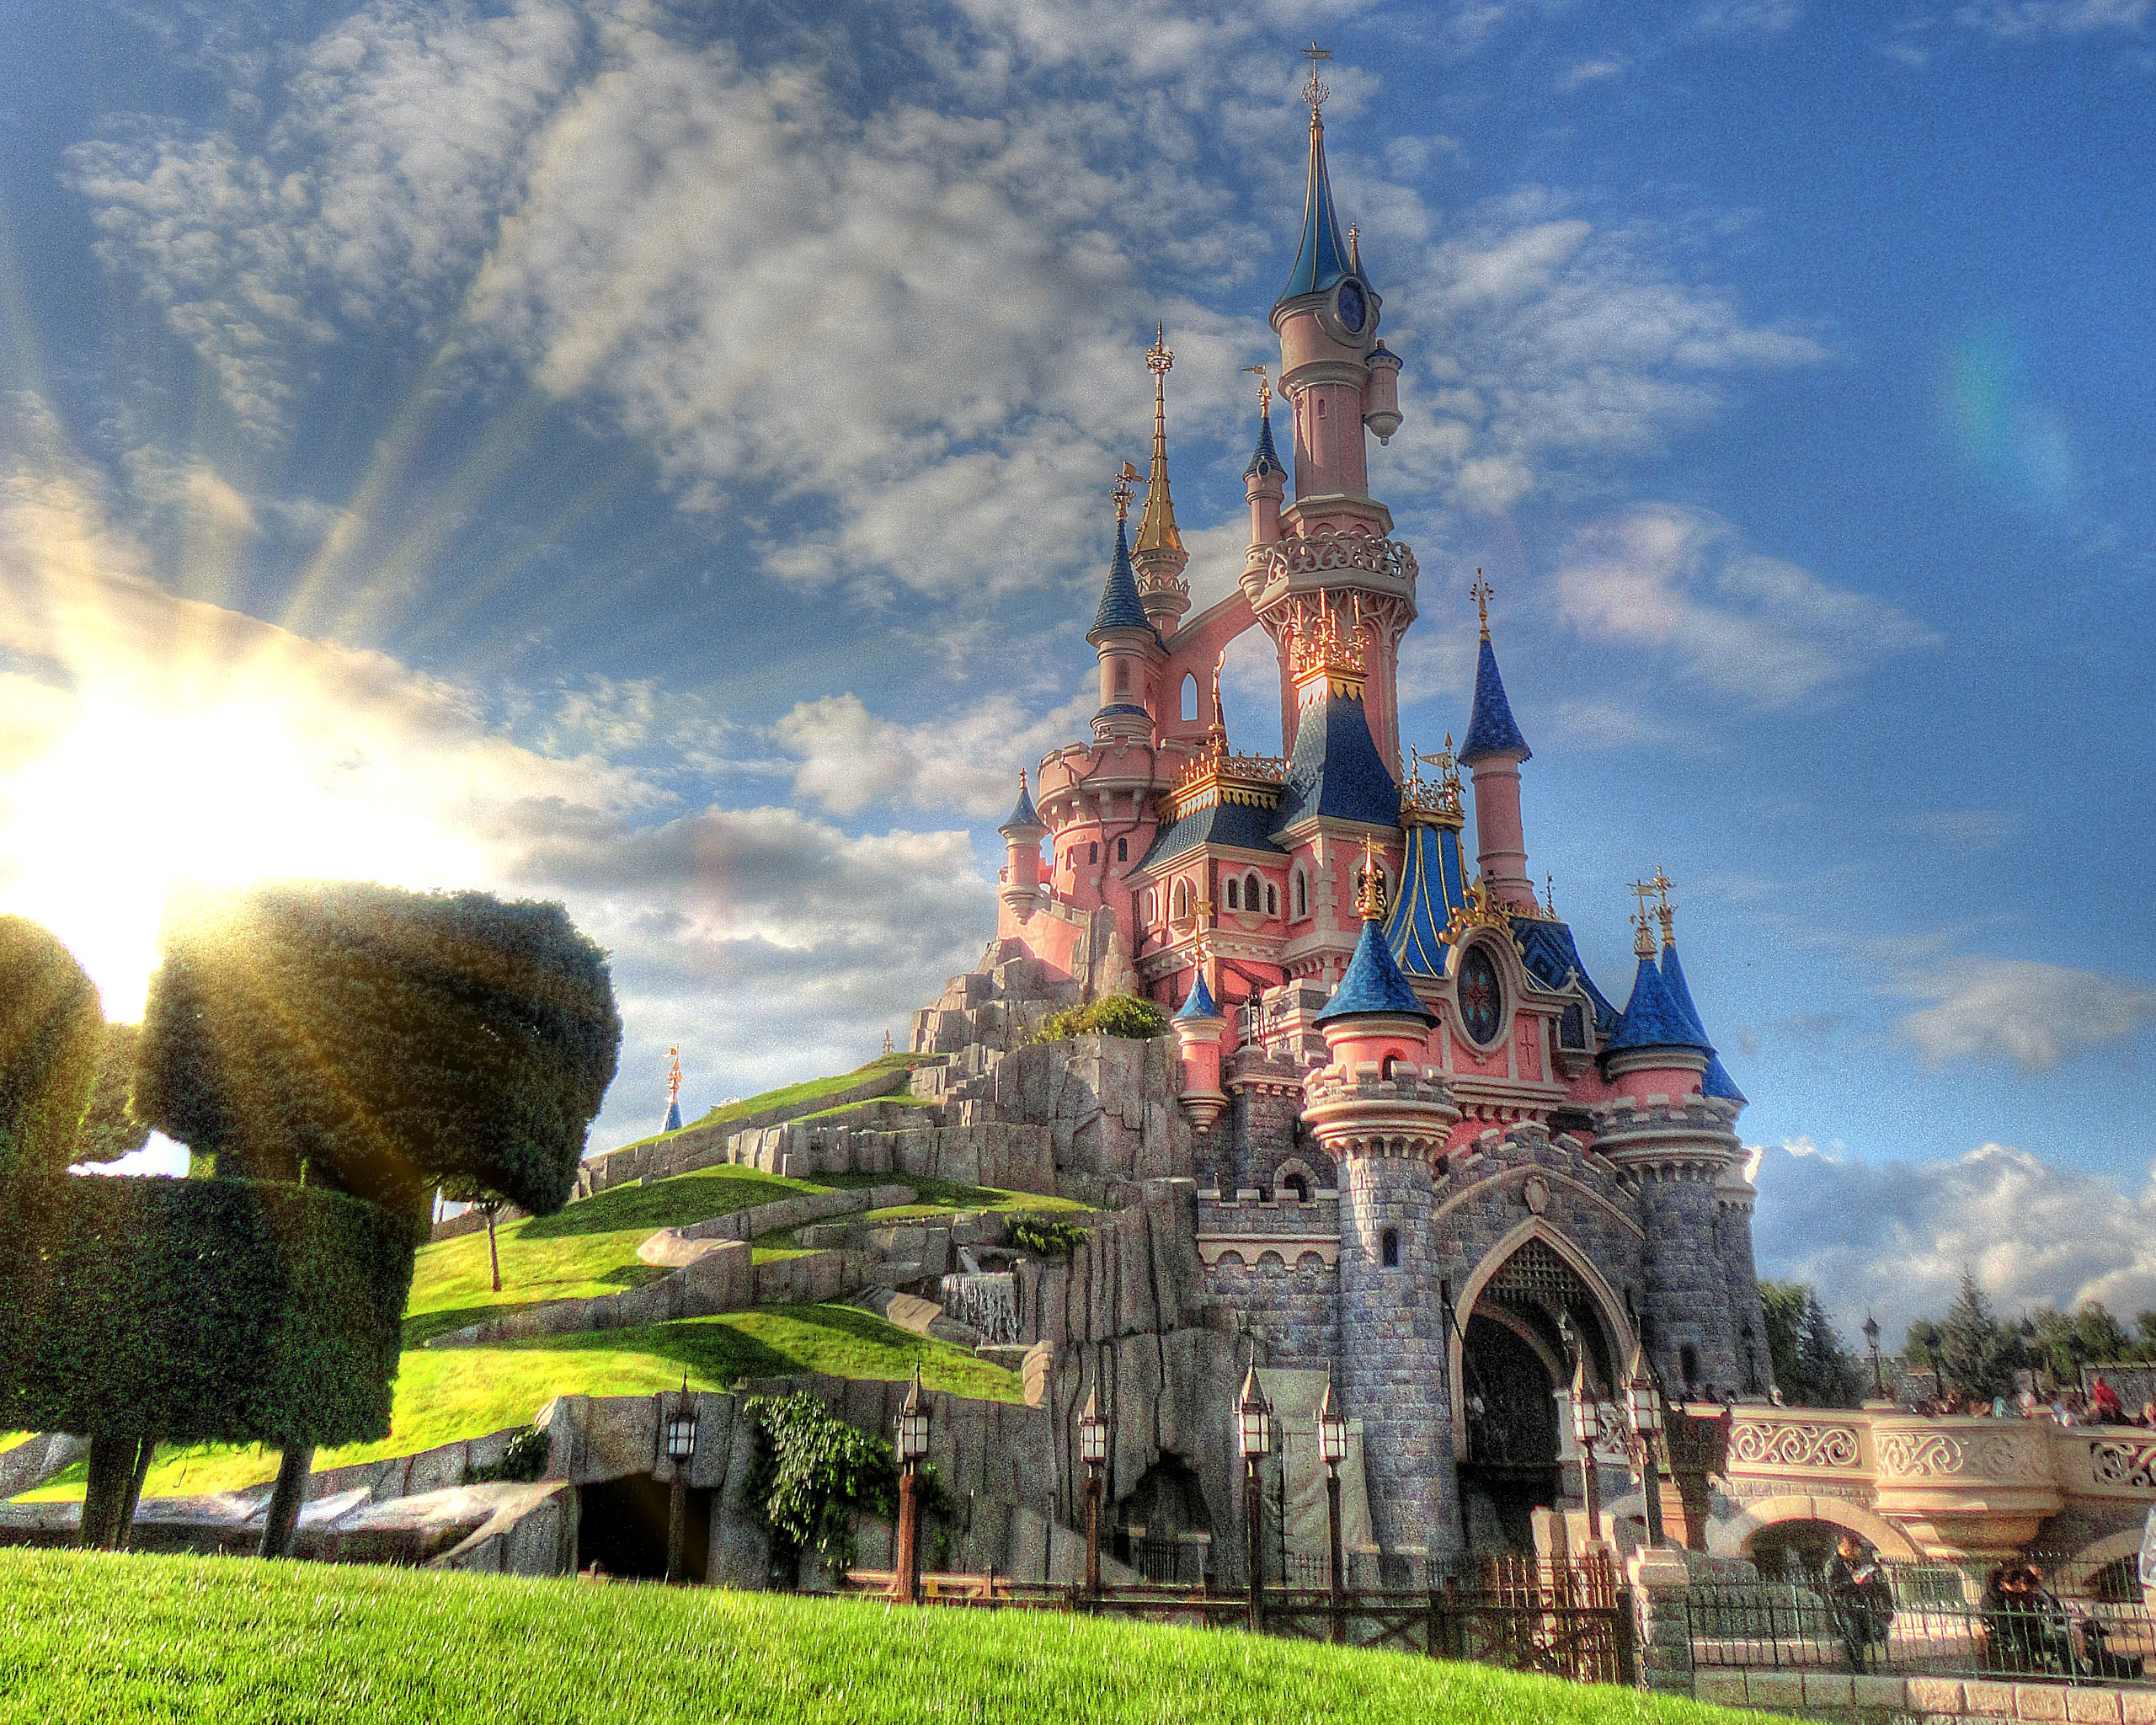 Disneyland Paris Wallpaper 2560x2048